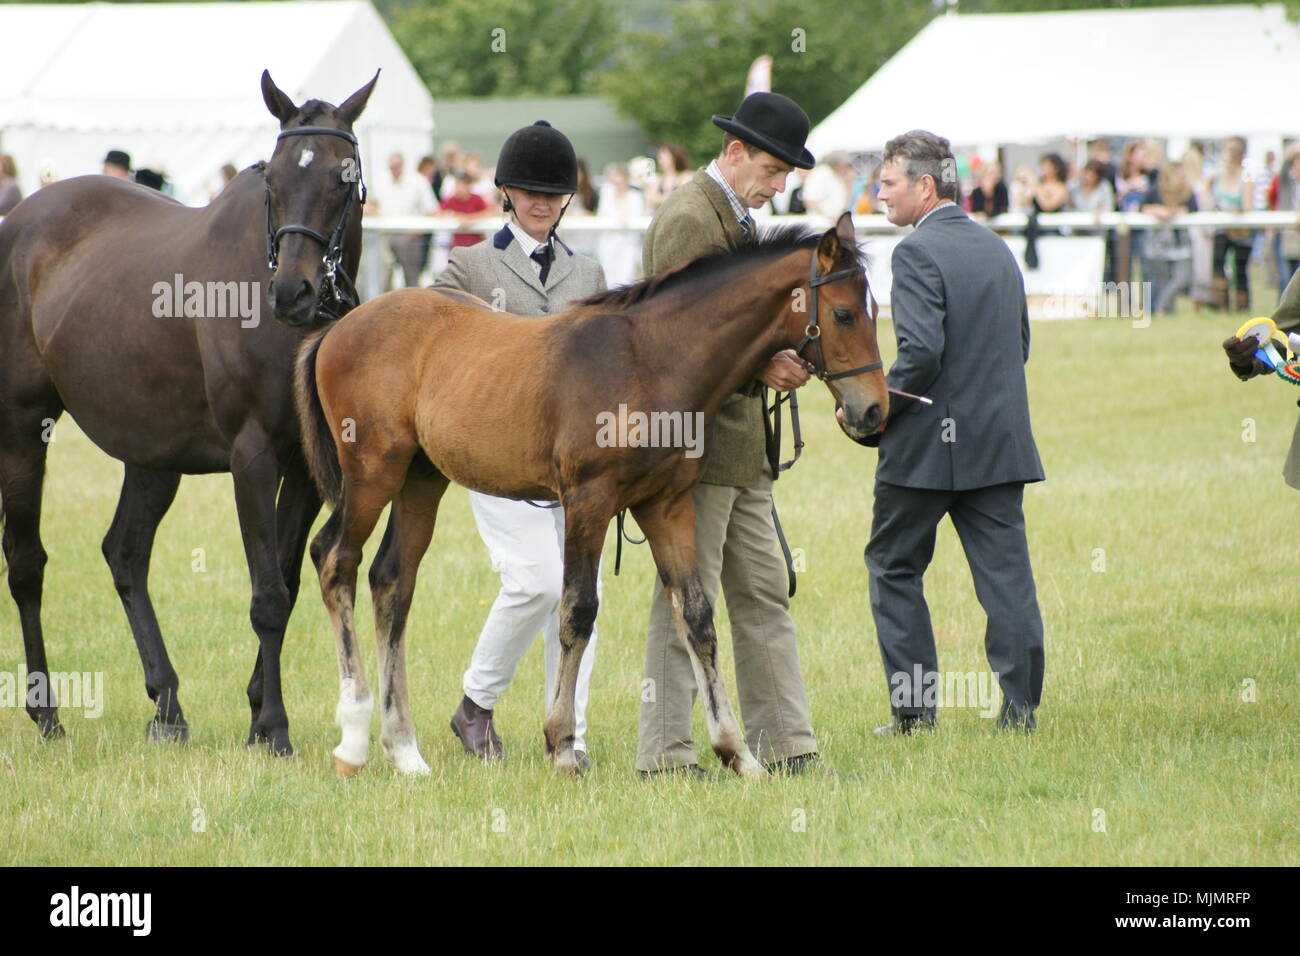 Driffield show, The Showground, country fair,  Driffield, UK - Stock Image